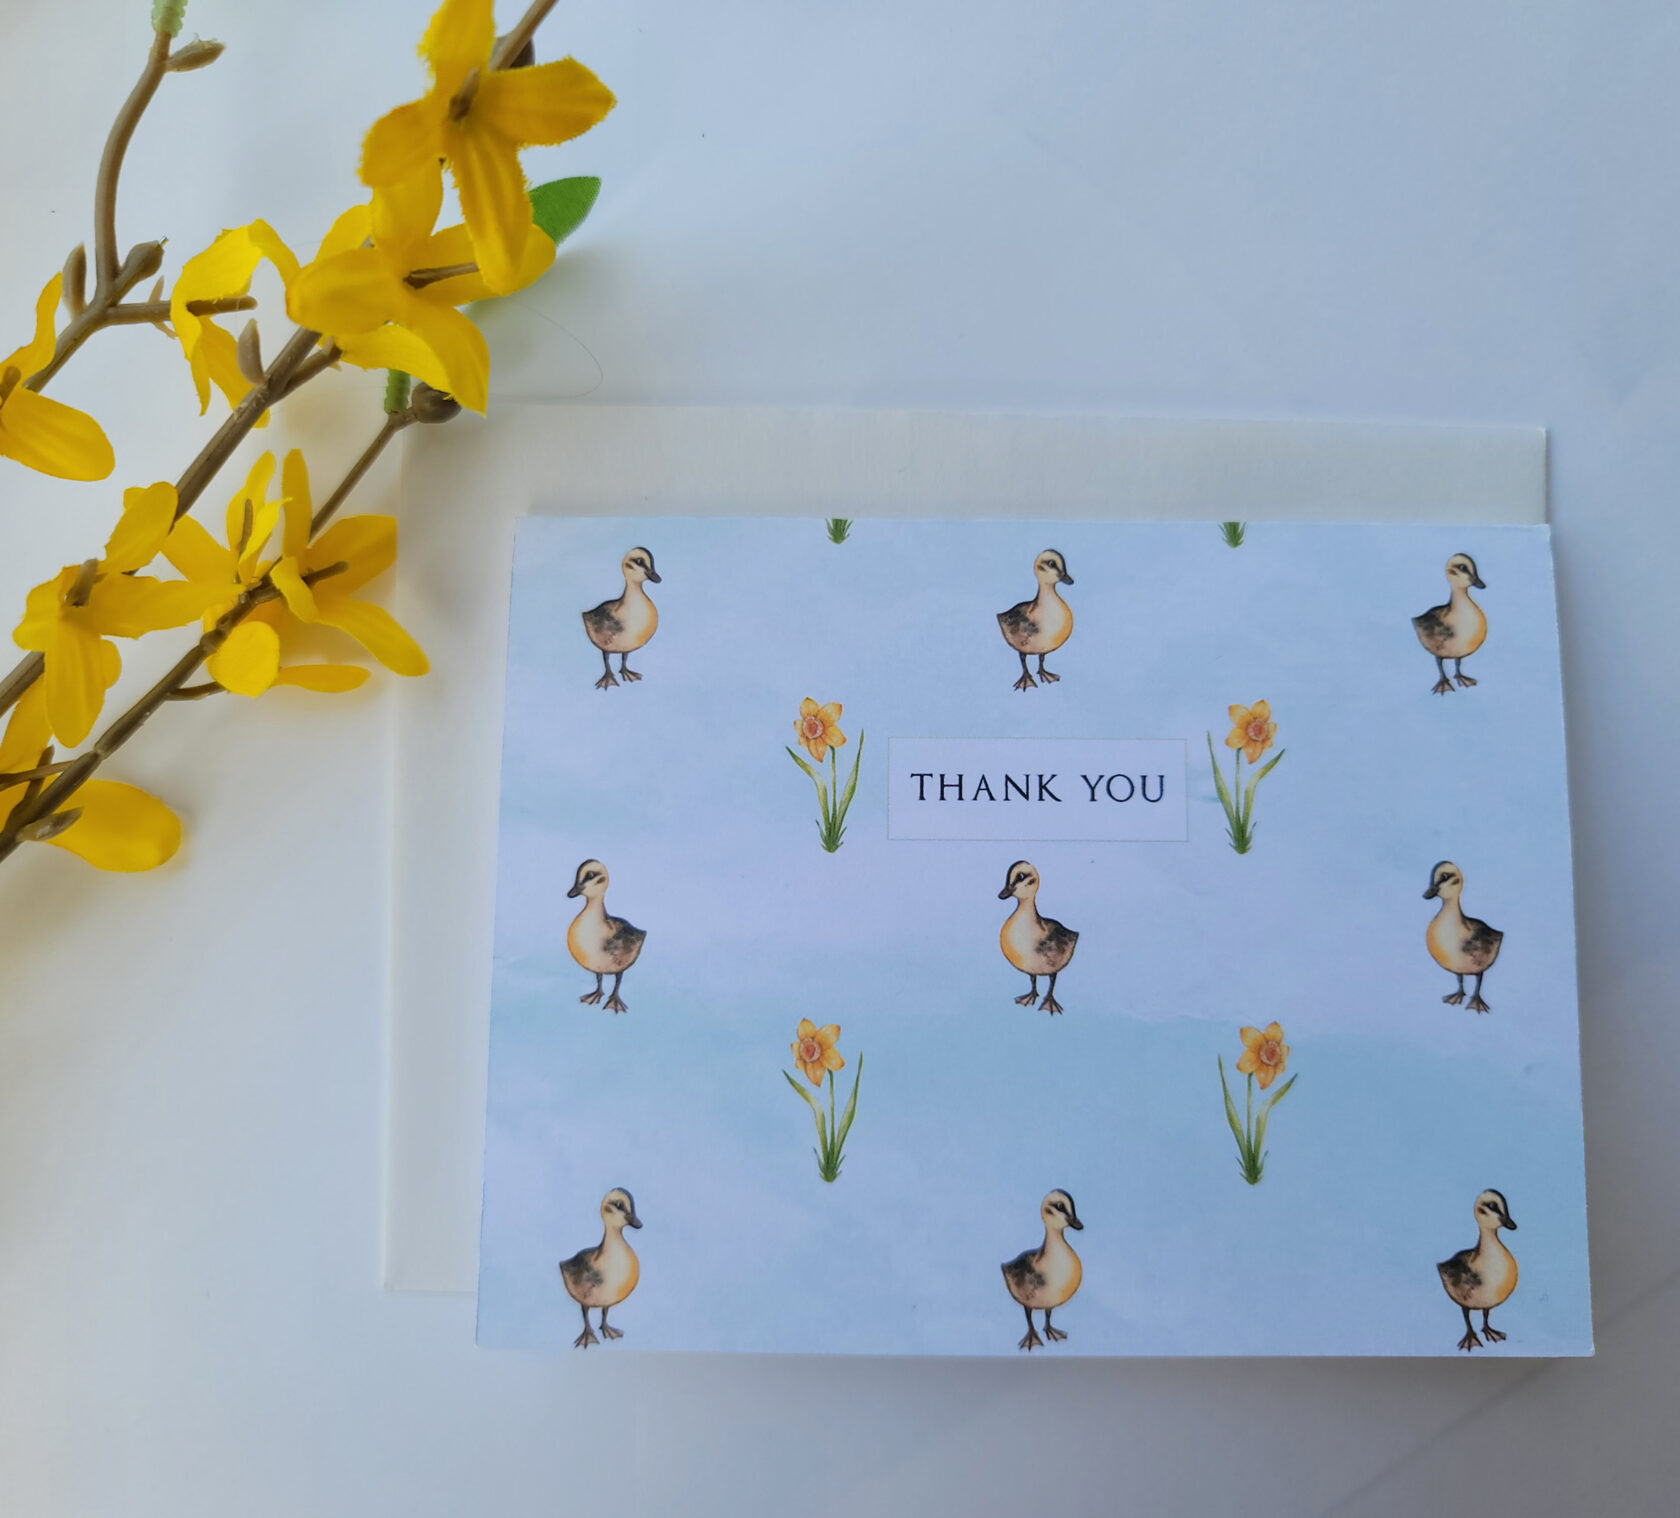 Ducks and Daffodils Thank You Card